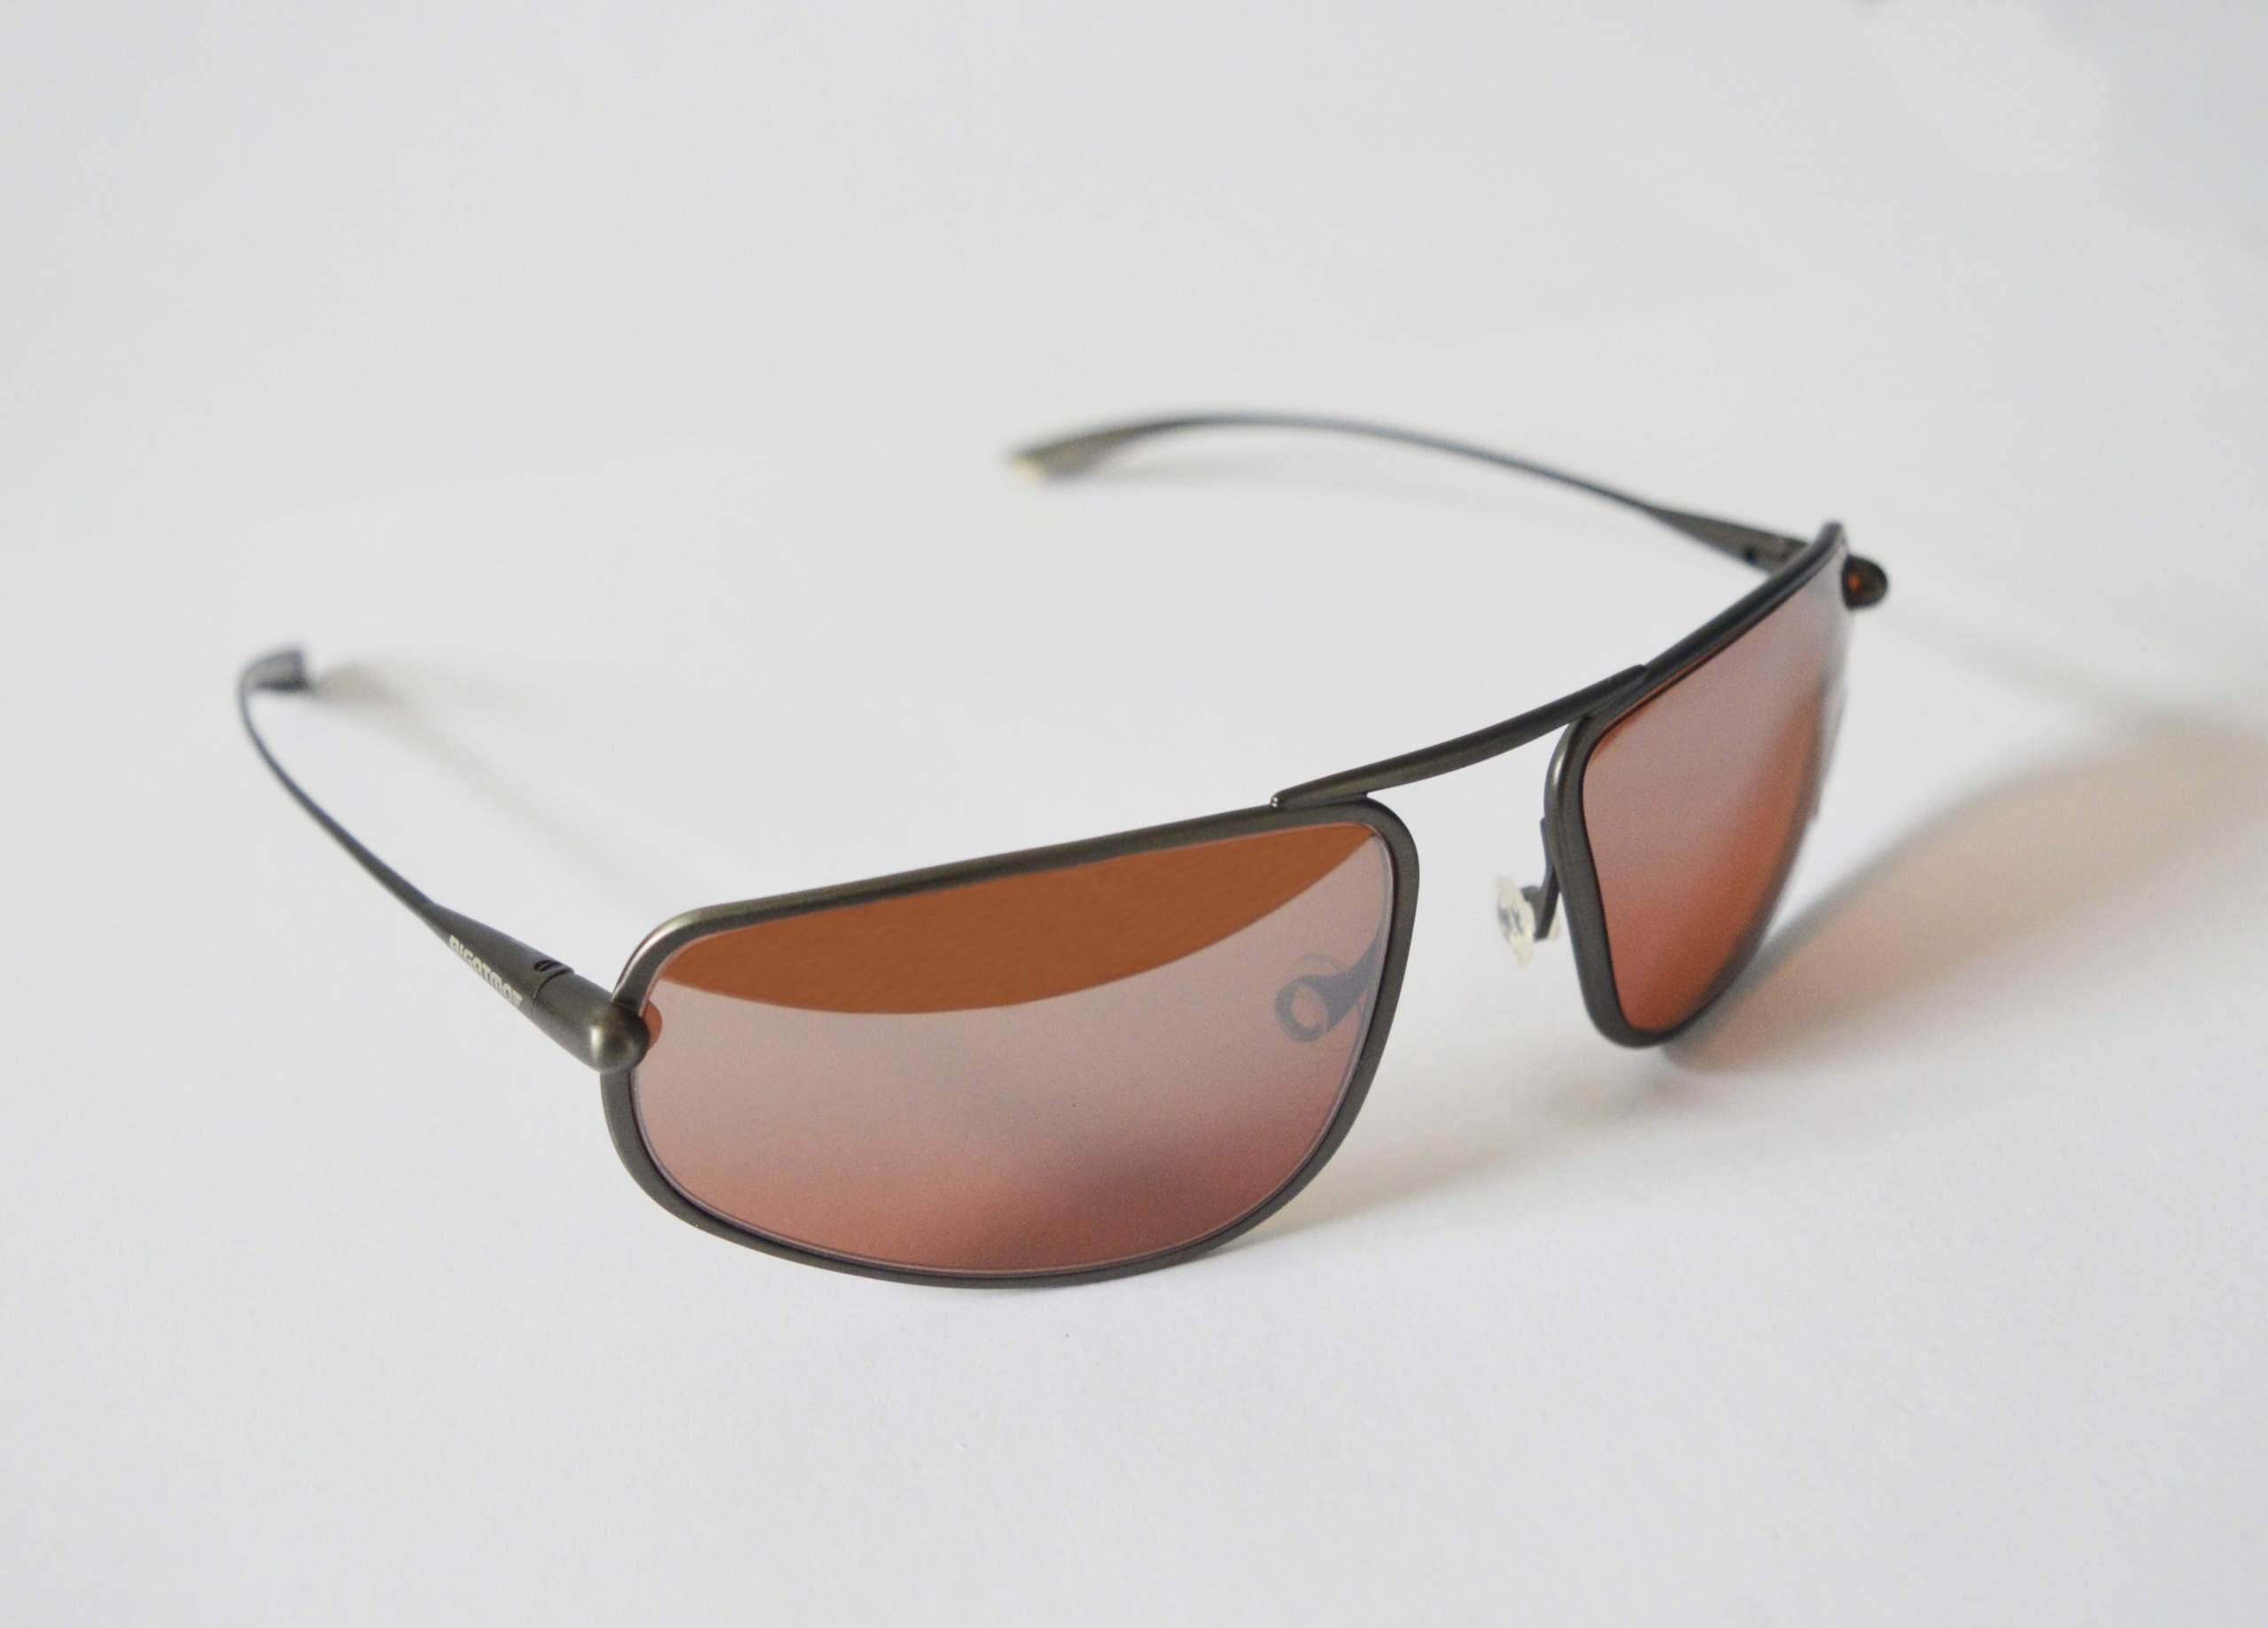 Strato - Gunmetal Titanium Frame Silver Gradient Mirror Copper/Brown Photochromic Sunglasses